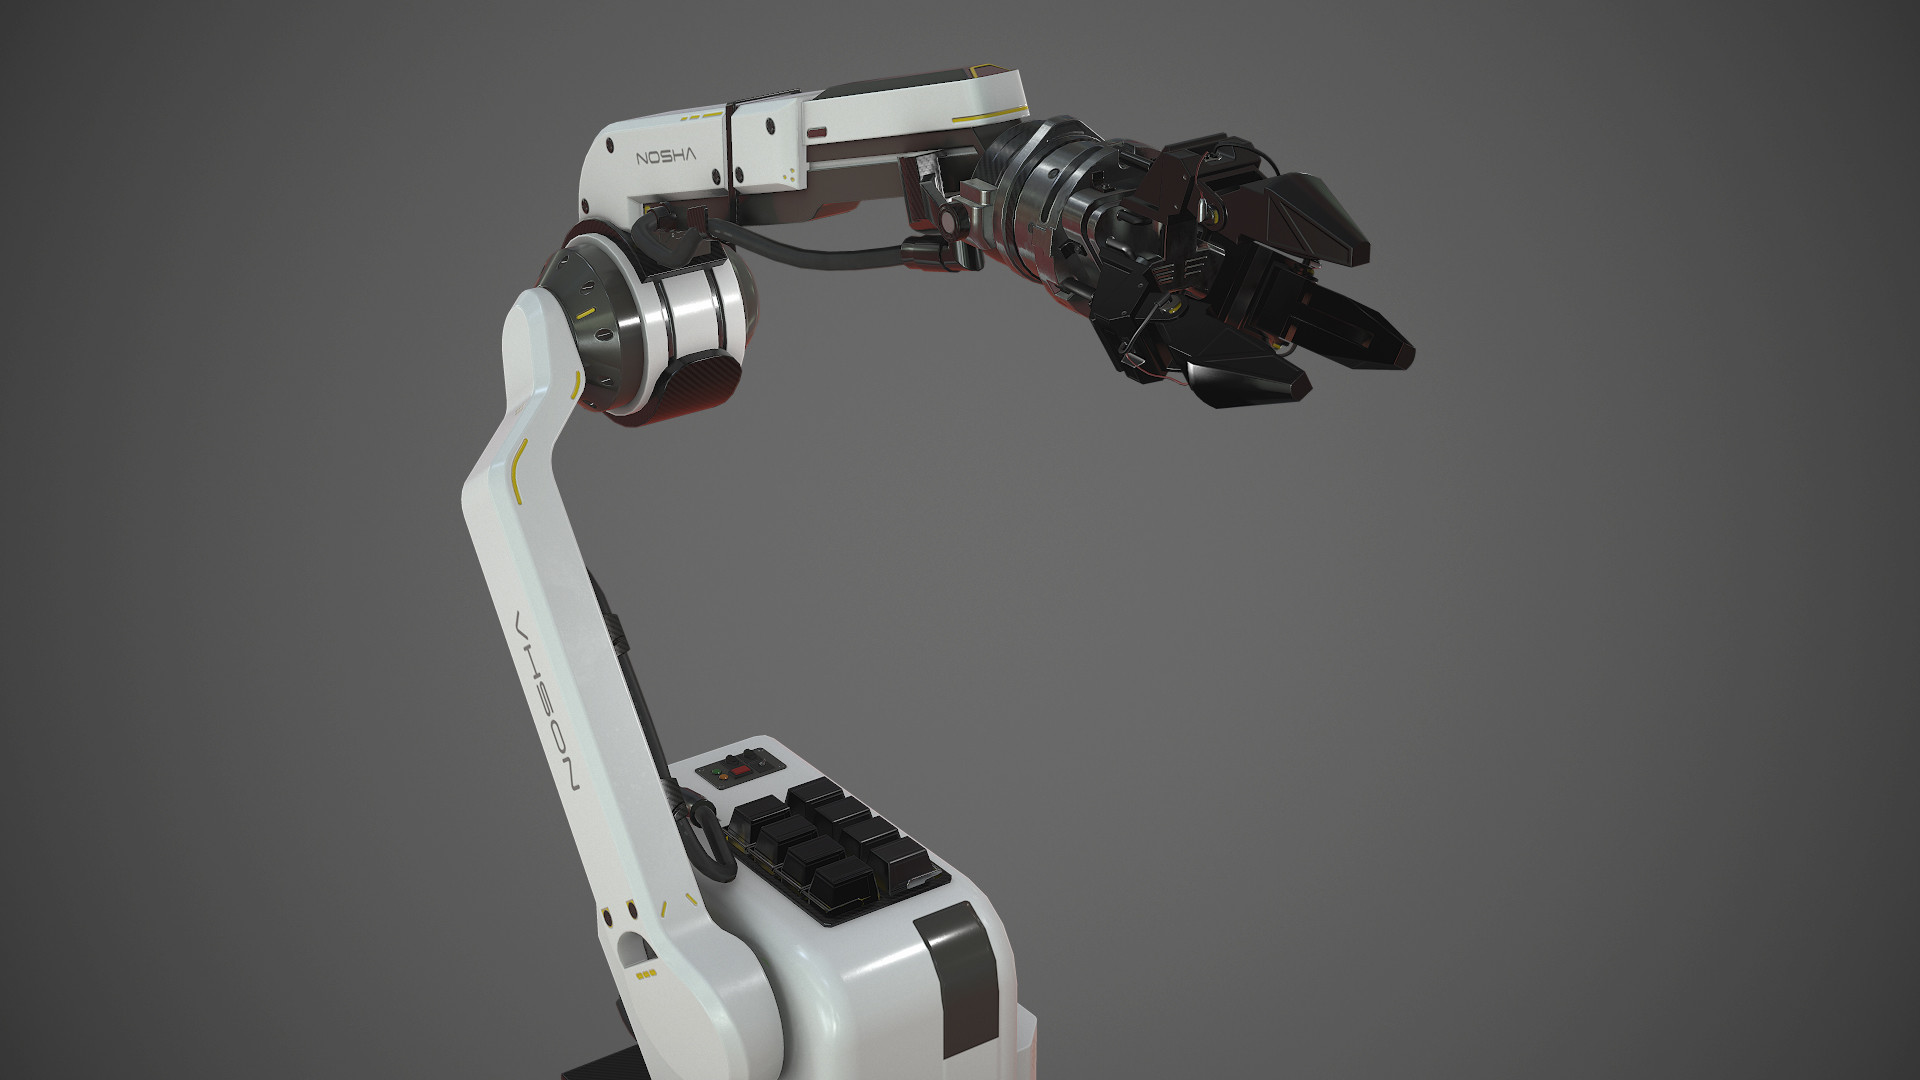 machine extends robotic arms - HD1920×1080